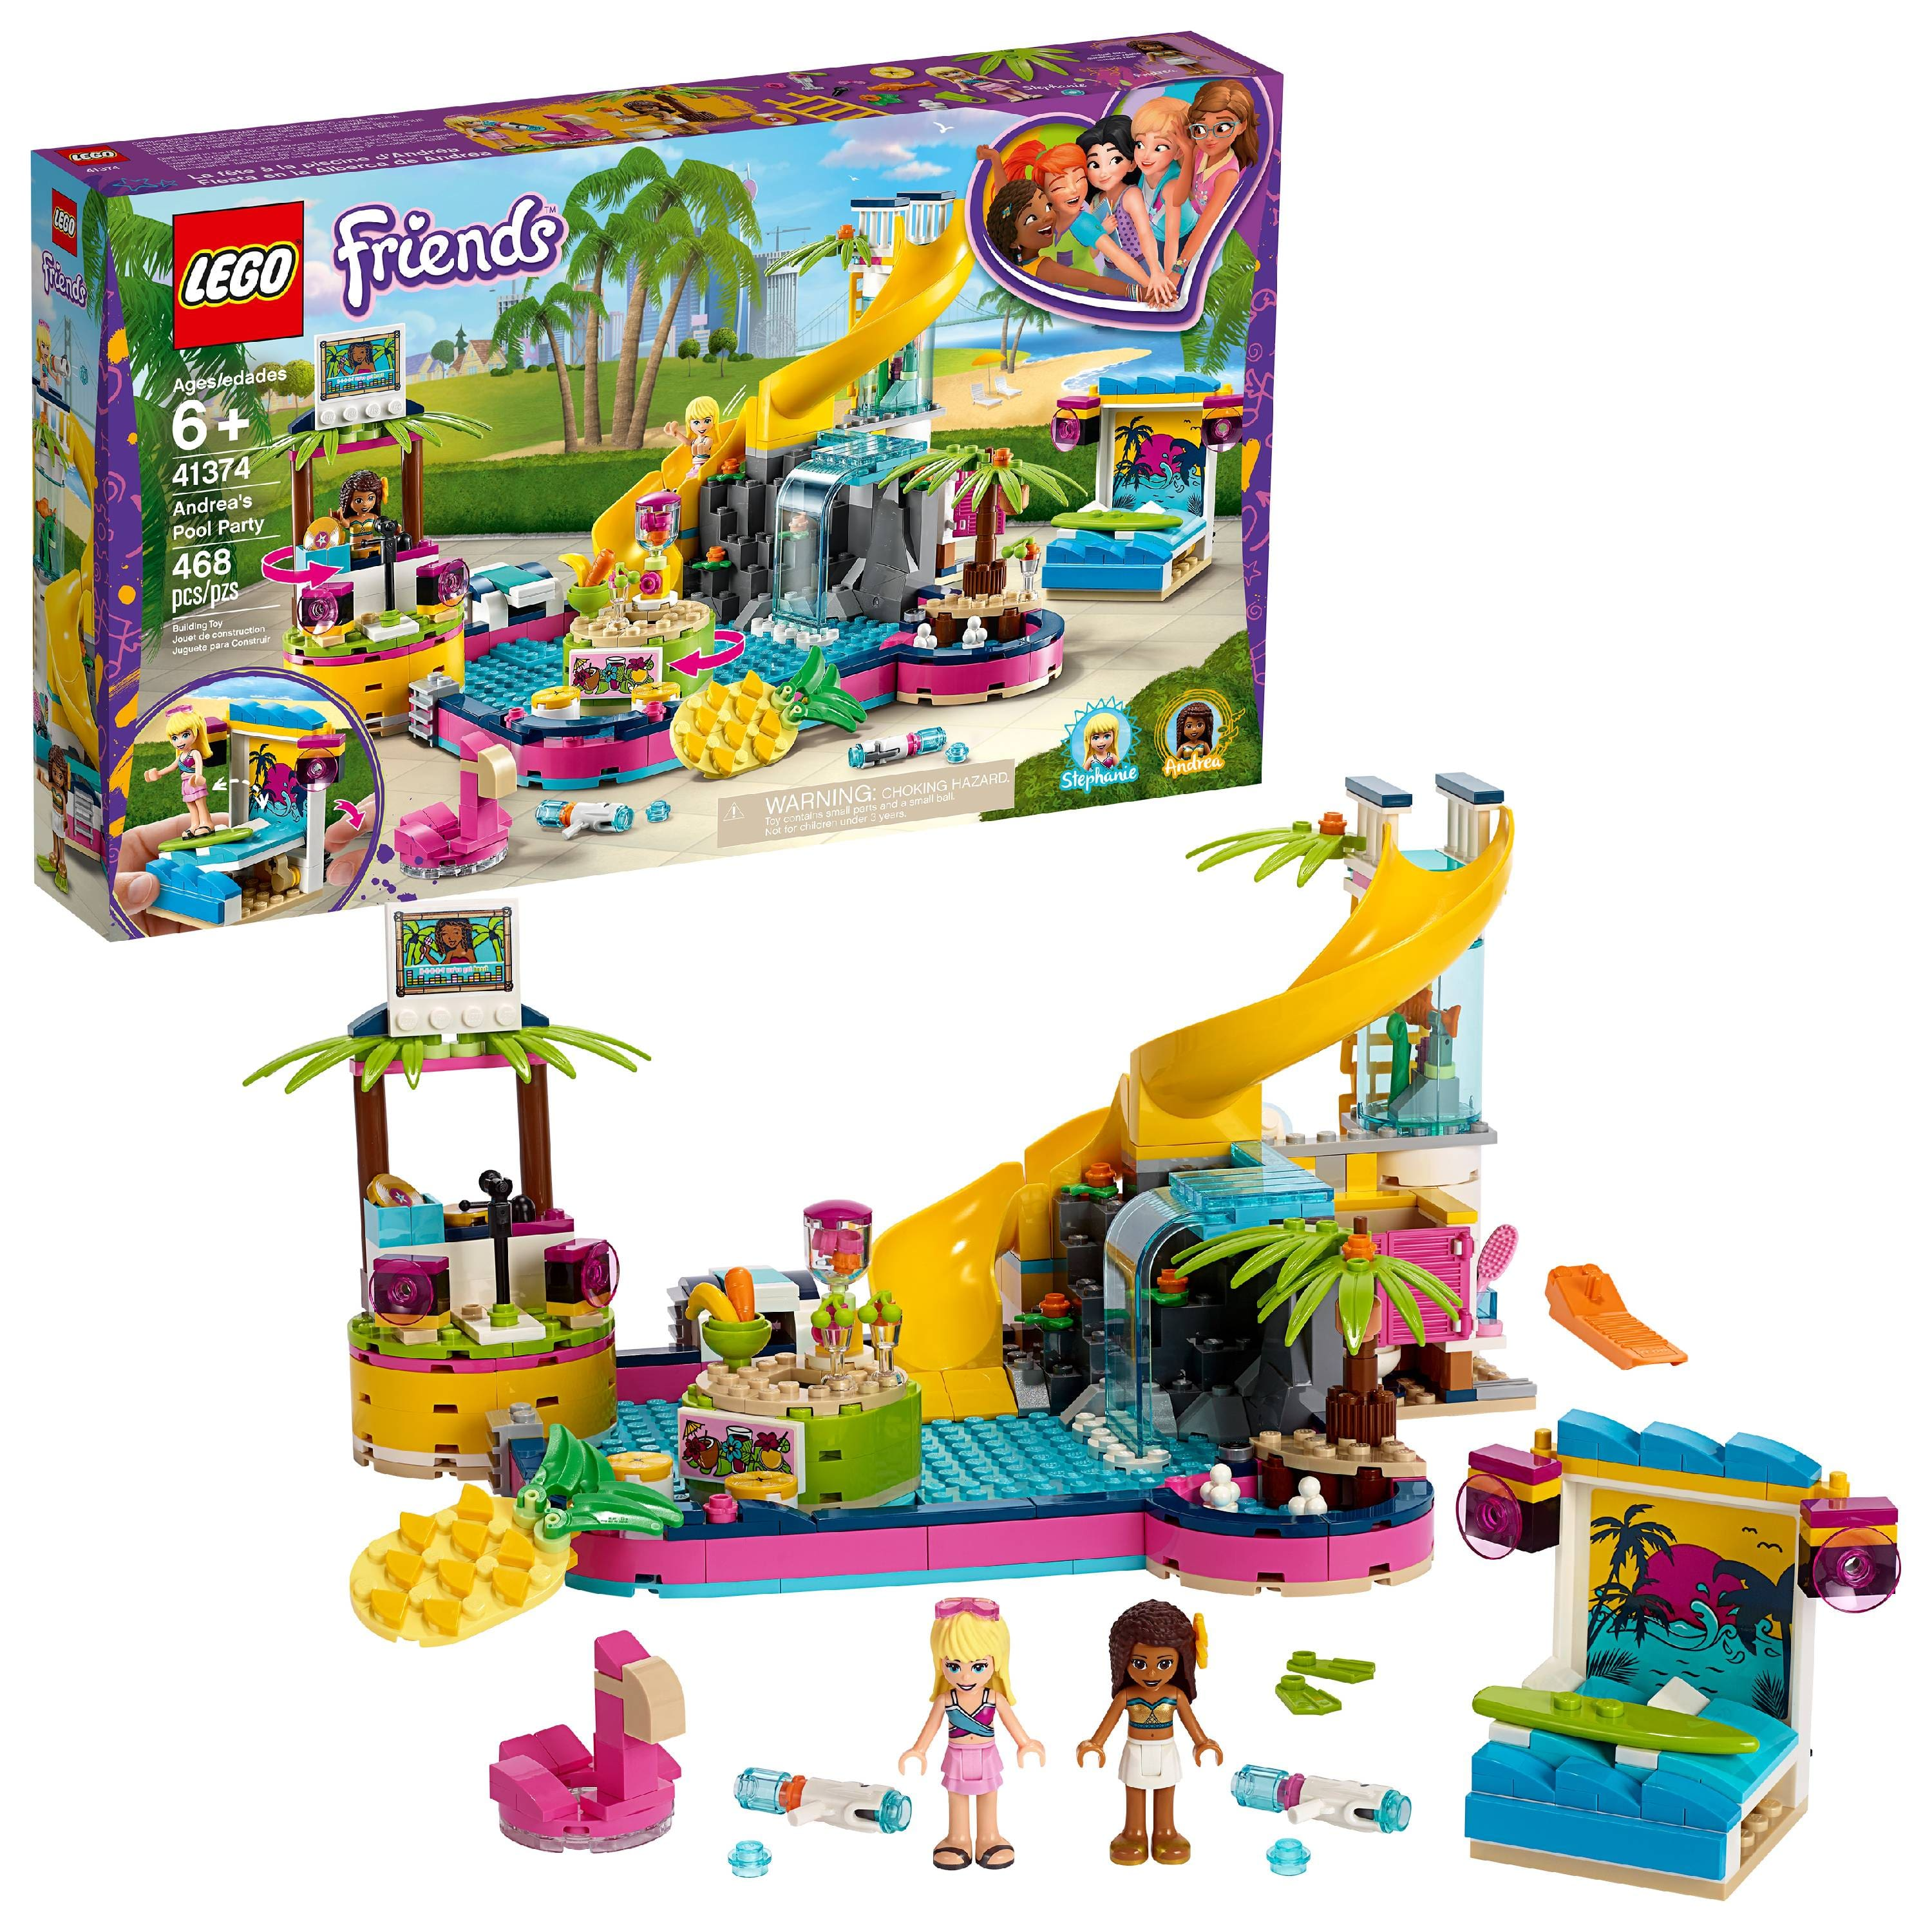 462-PC LEGO Friends Andrea's Pool Party 41374  Building Set $35 + Free store pickup